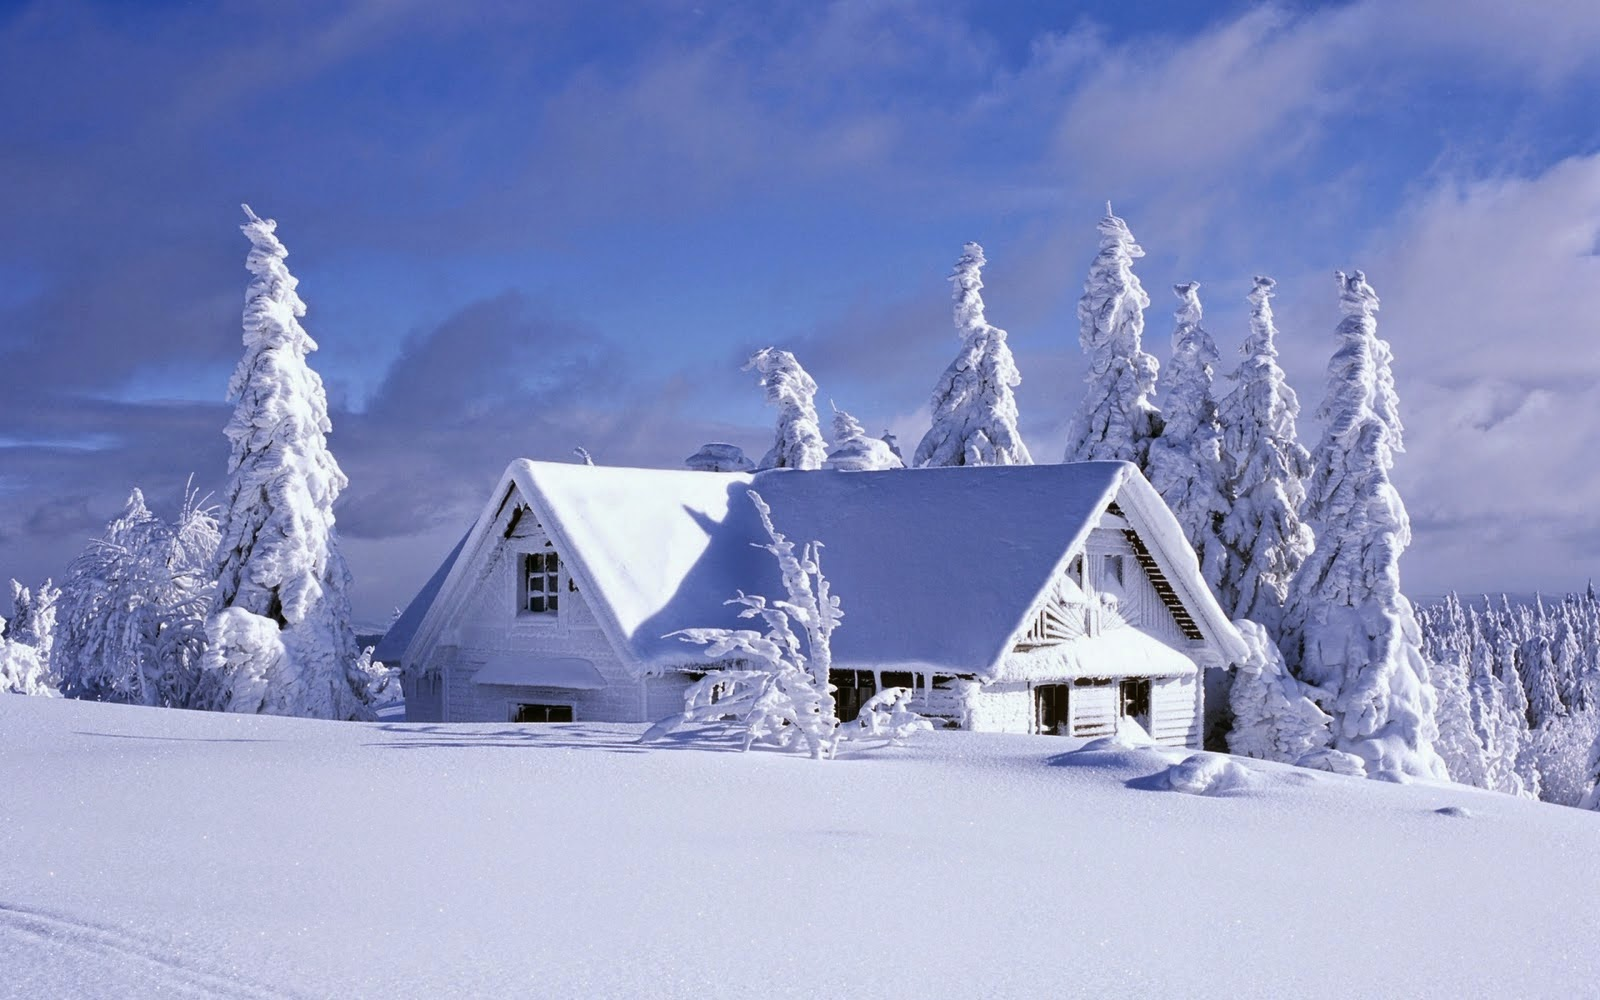 free winter wallpaper snow